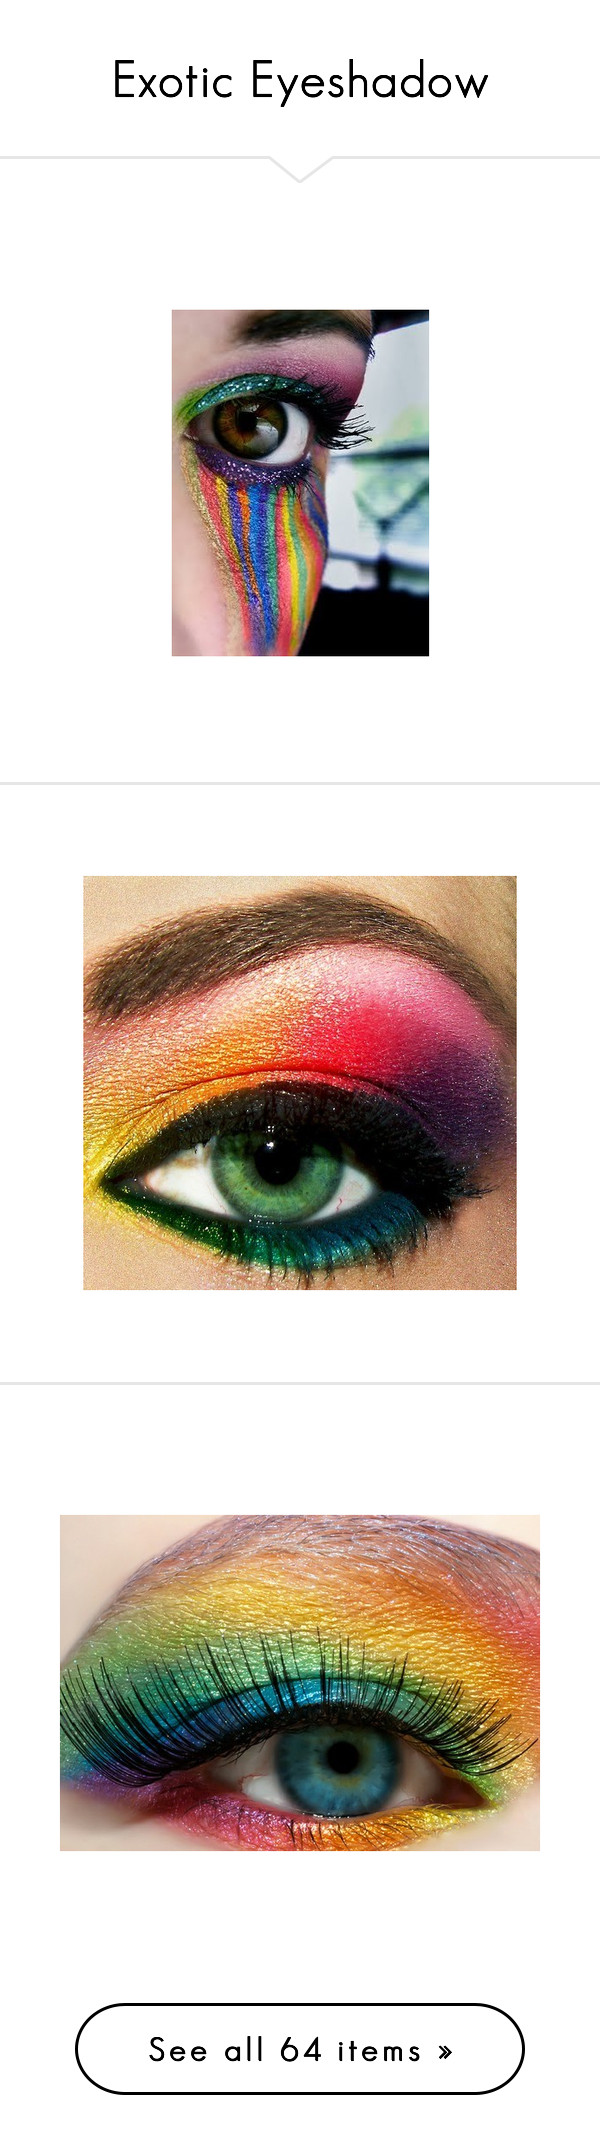 """""""Exotic Eyeshadow"""" by animal-love ❤ liked on Polyvore featuring beauty products, makeup, eye makeup, eyes, rainbow, backgrounds, pictures, rainbow eye makeup, eyeshadow et beauty"""